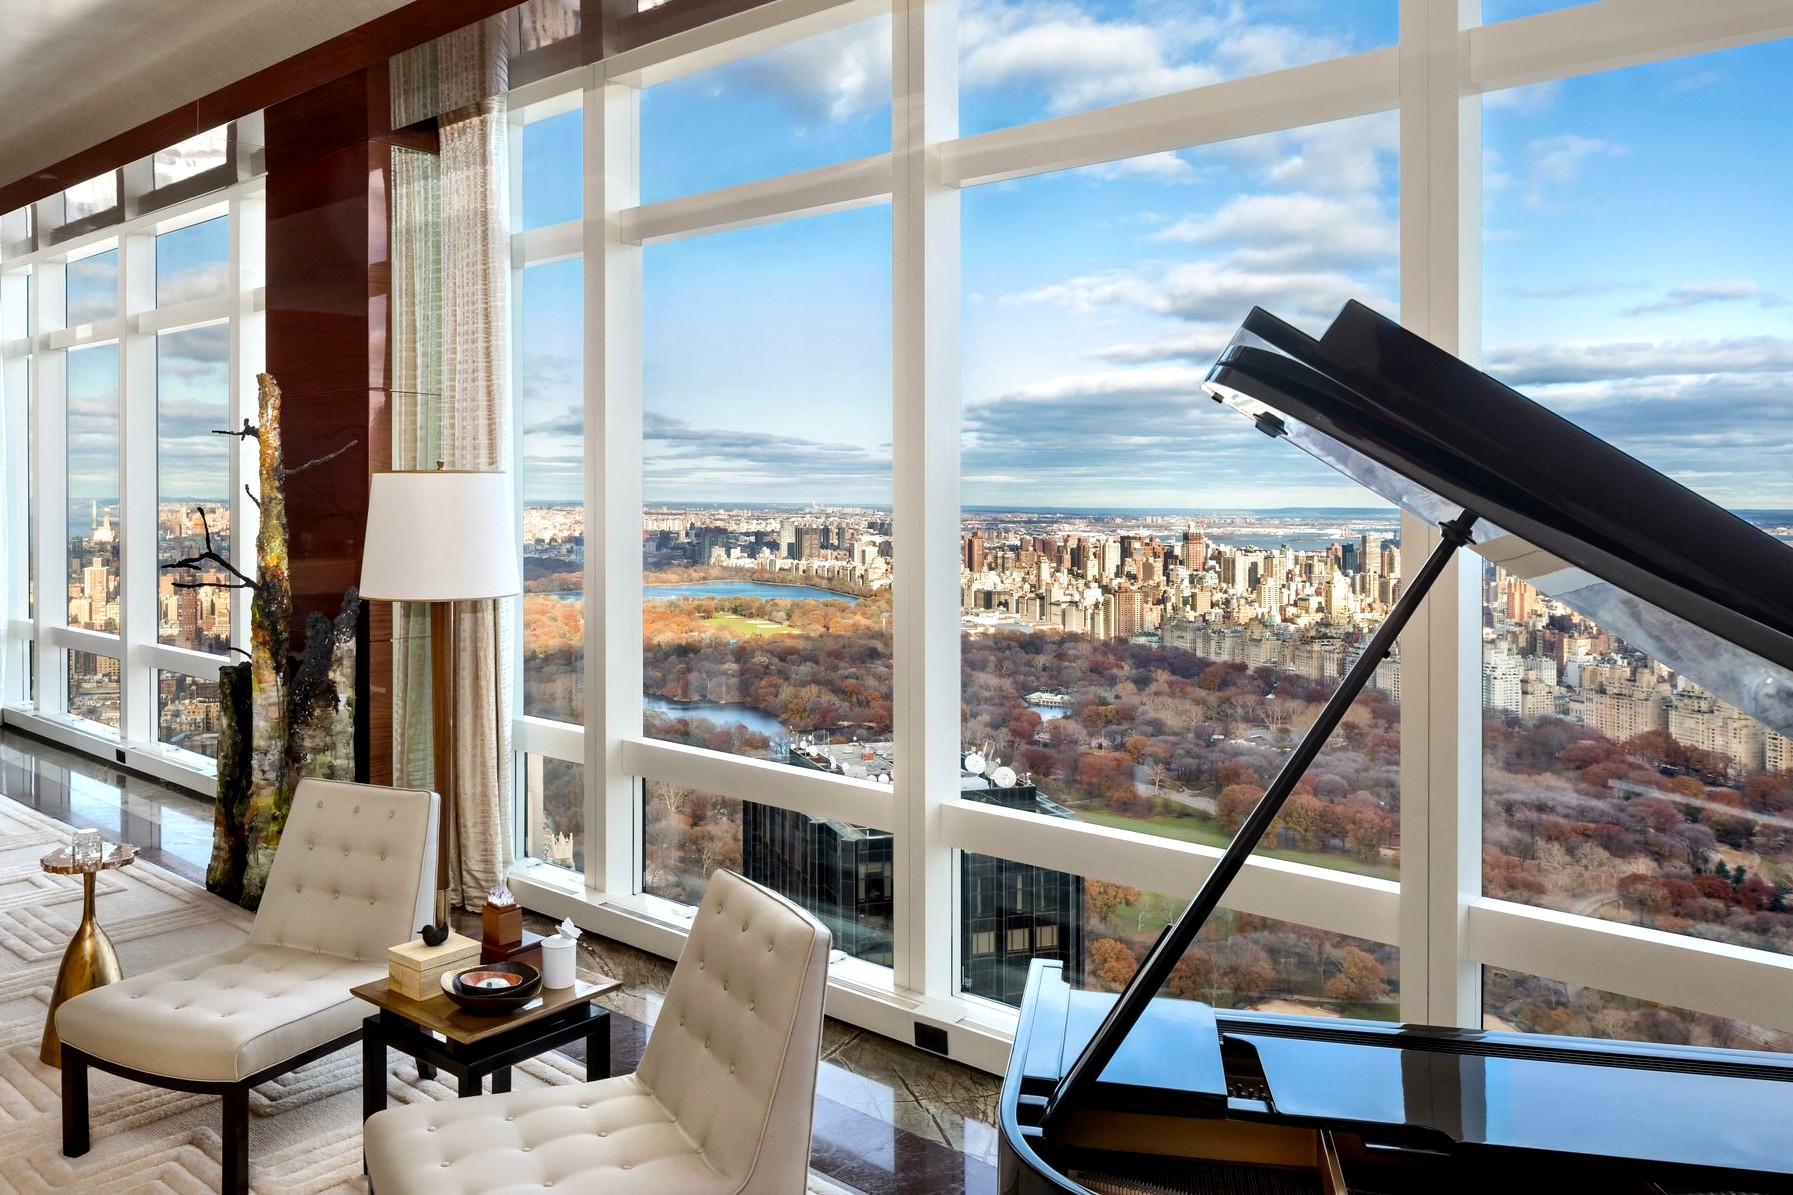 Most epxnesive penthouse apartments in the world: NYC and Dubai